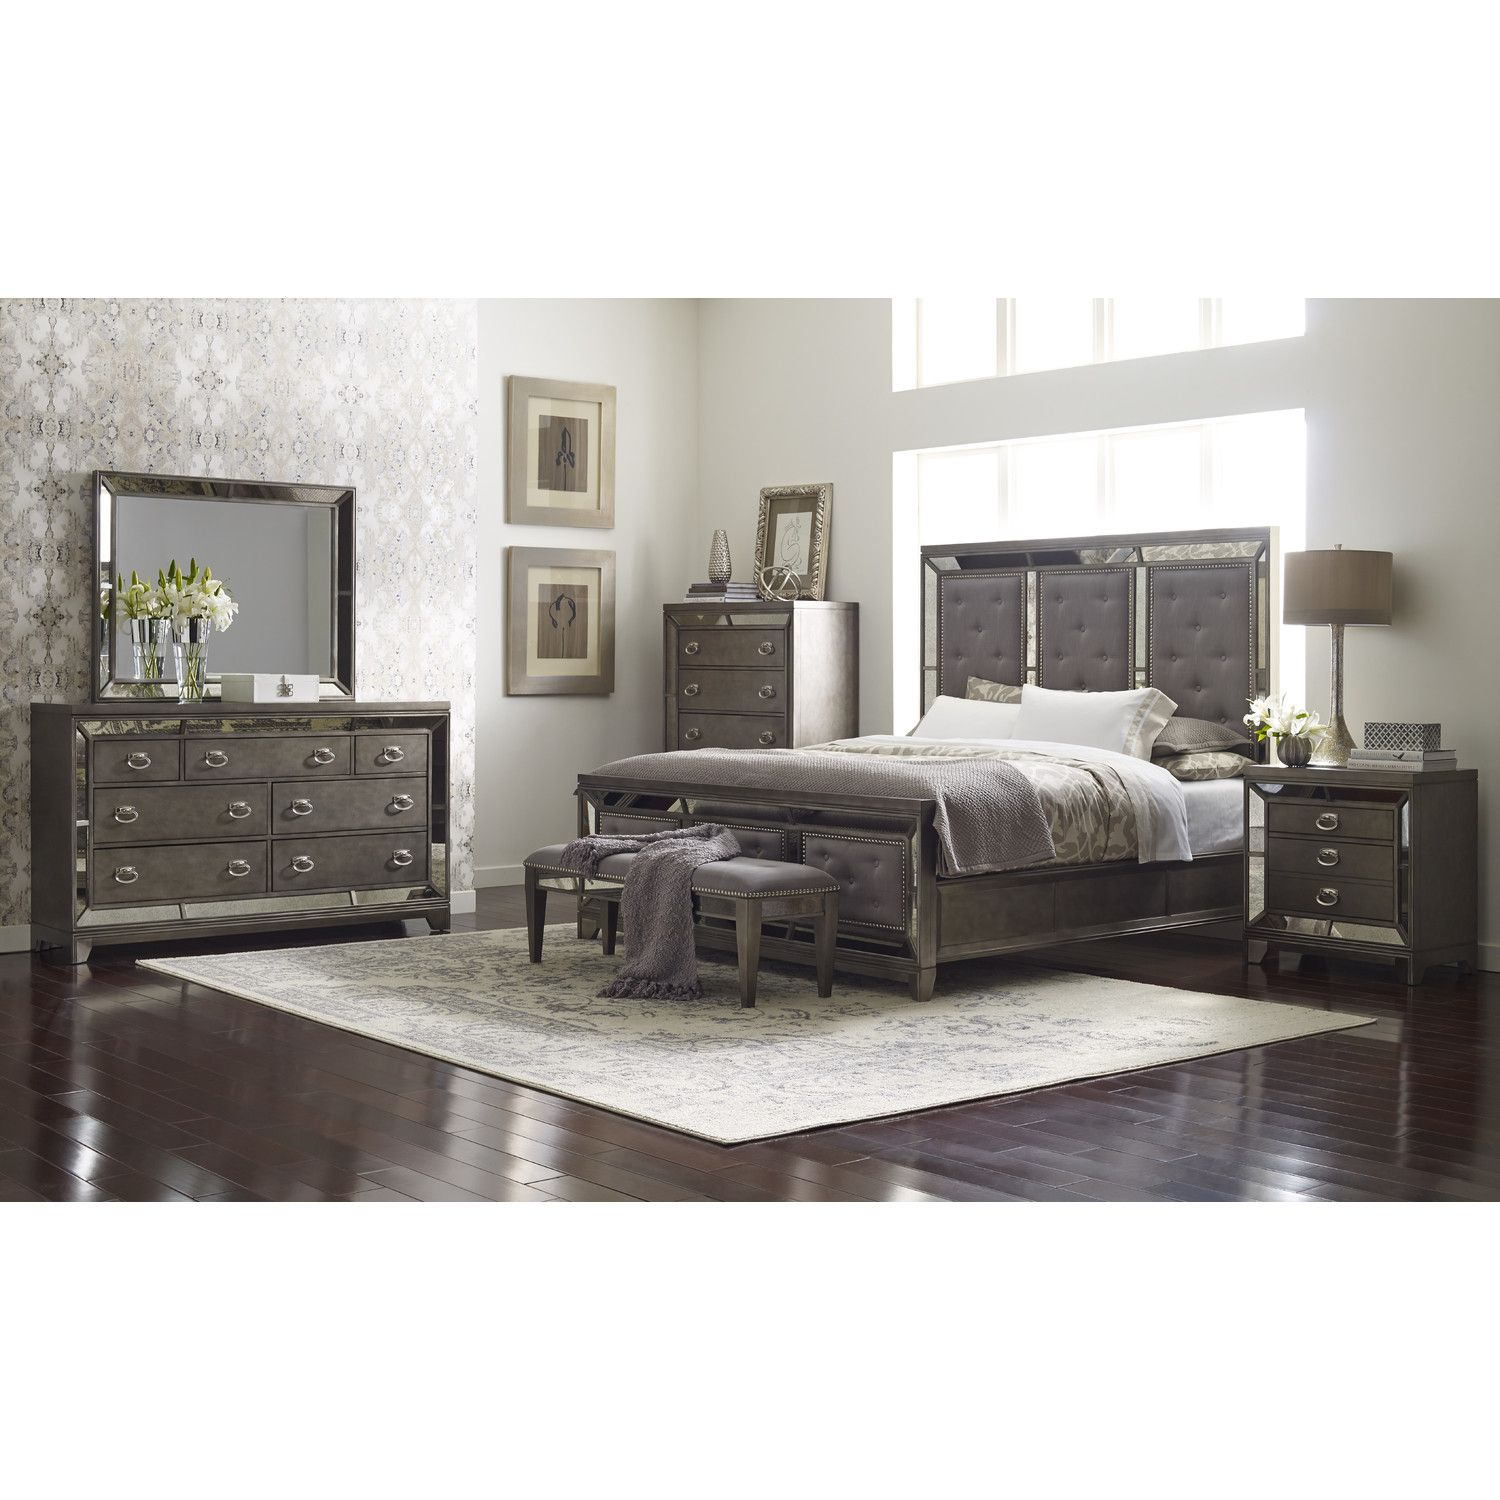 shop wayfair for bedroom sets to match every style and budget enjoy free shipping on